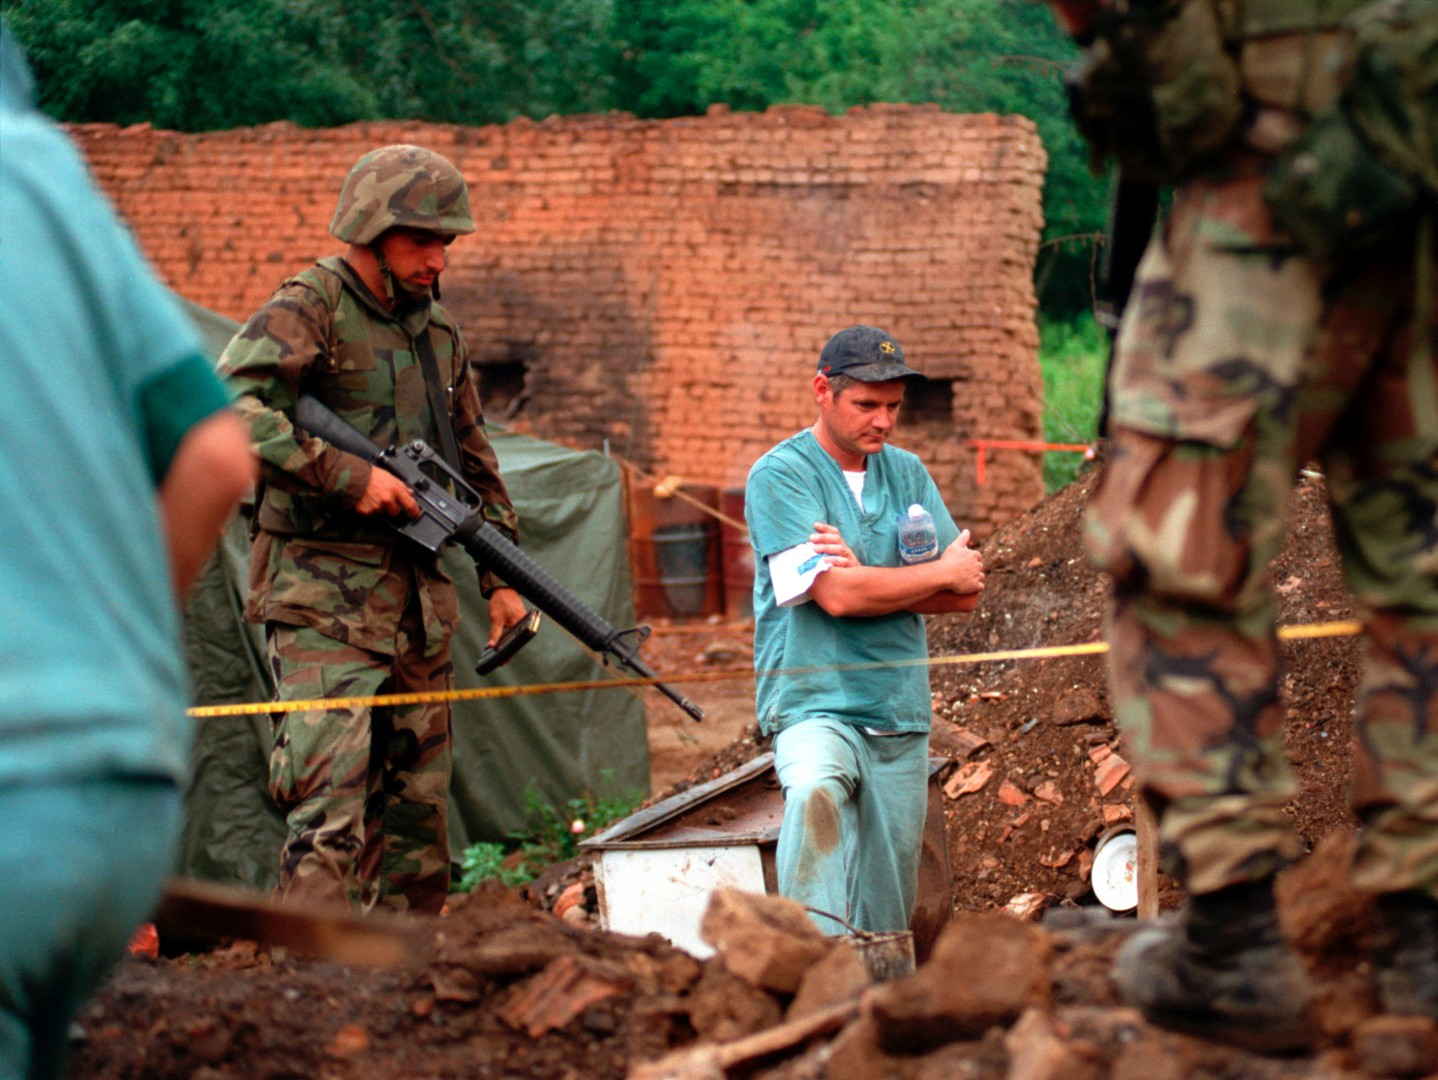 990701-M-5696S-003 	U.S. Marines provide security as members of the Royal Canadian Mounted Police Forensics Team investigate a grave site in a village in Kosovo on July 1, 1999.  Elements of the 26th Marine Expeditionary Unit are deployed from ships of the USS Kearsarge Amphibious Ready Group as an enabling force for KFOR.  KFOR is the NATO-led, international military force which will deploy into Kosovo on a peacekeeping mission known as Operation Joint Guardian.  KFOR will ultimately consist of over 50,000 troops from more than 24 contributing nations, including NATO member-states, Partnership for Peace nations and others.  DoD photo by Sgt. Craig J. Shell, U.S. Marine Corps.  (Released)